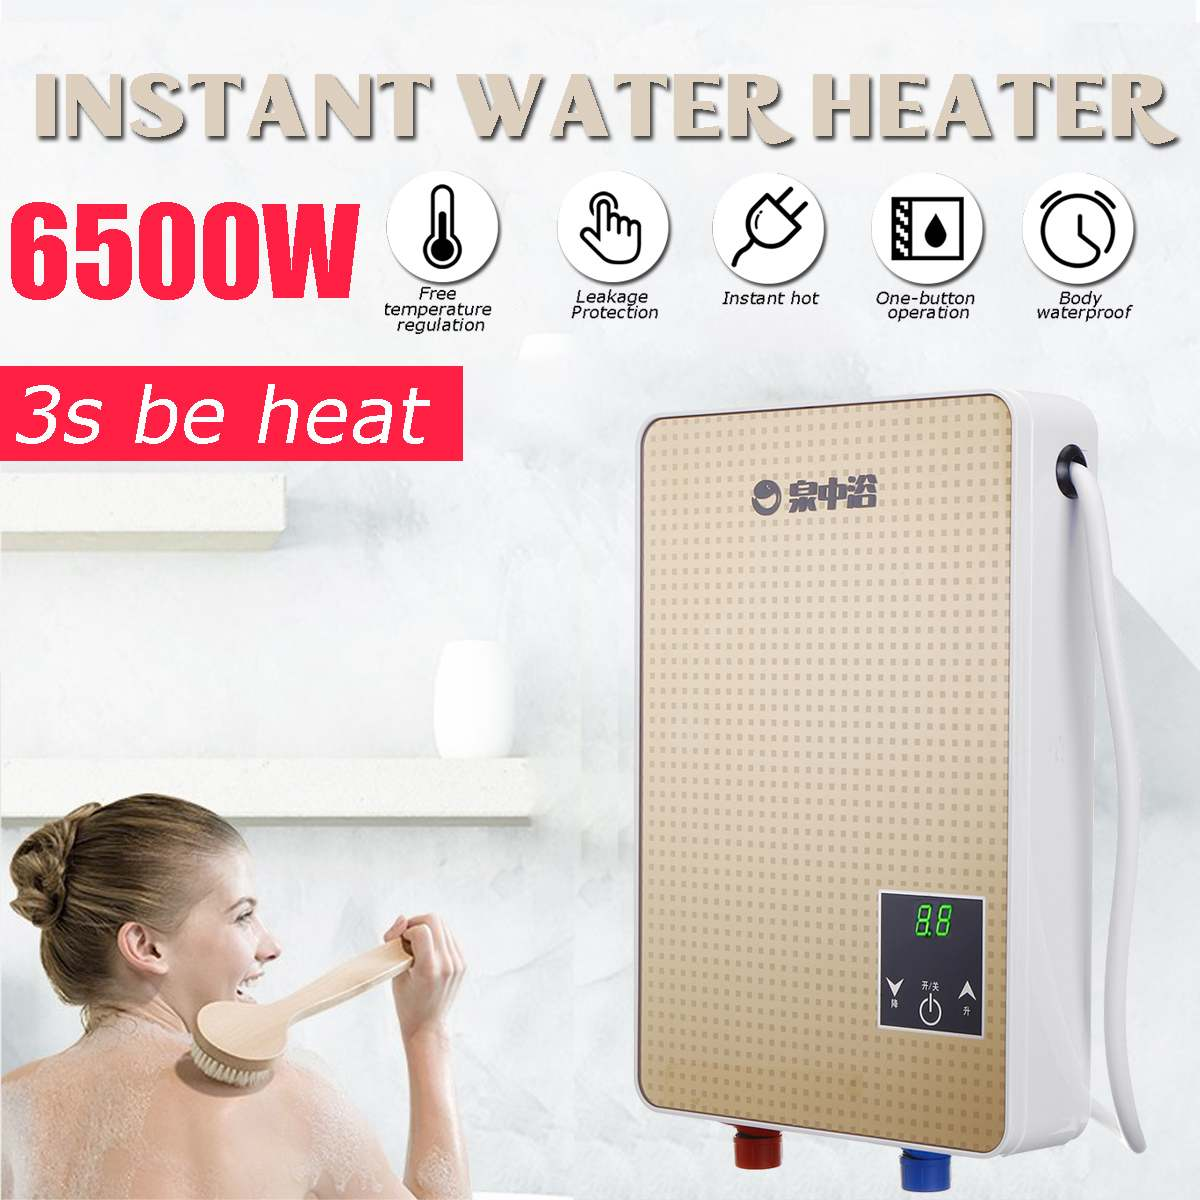 3s Instant Hot 6500W 220V Electric Hot Water Heater Tankless Instant Boiler Bathroom Shower Set Thermostat Safe Intelligent Auto